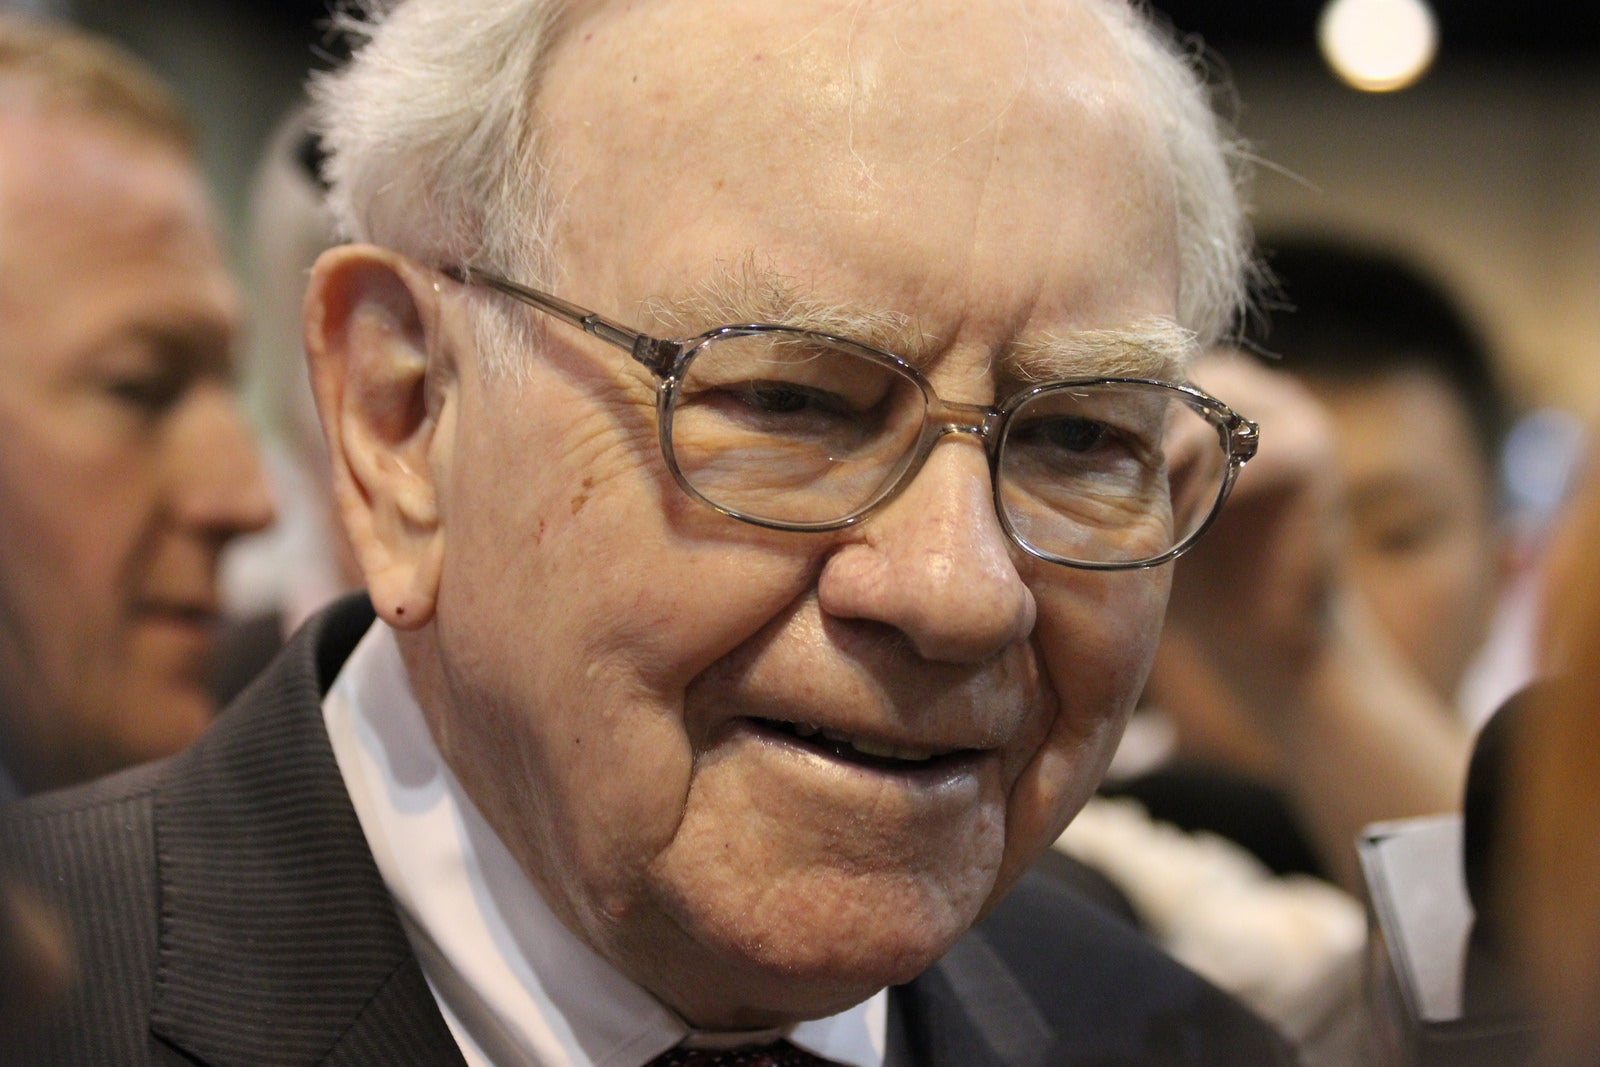 Warren Buffett's Berkshire Hathaway Sells Off Its Restaurant Brands Stake – The Motley Fool